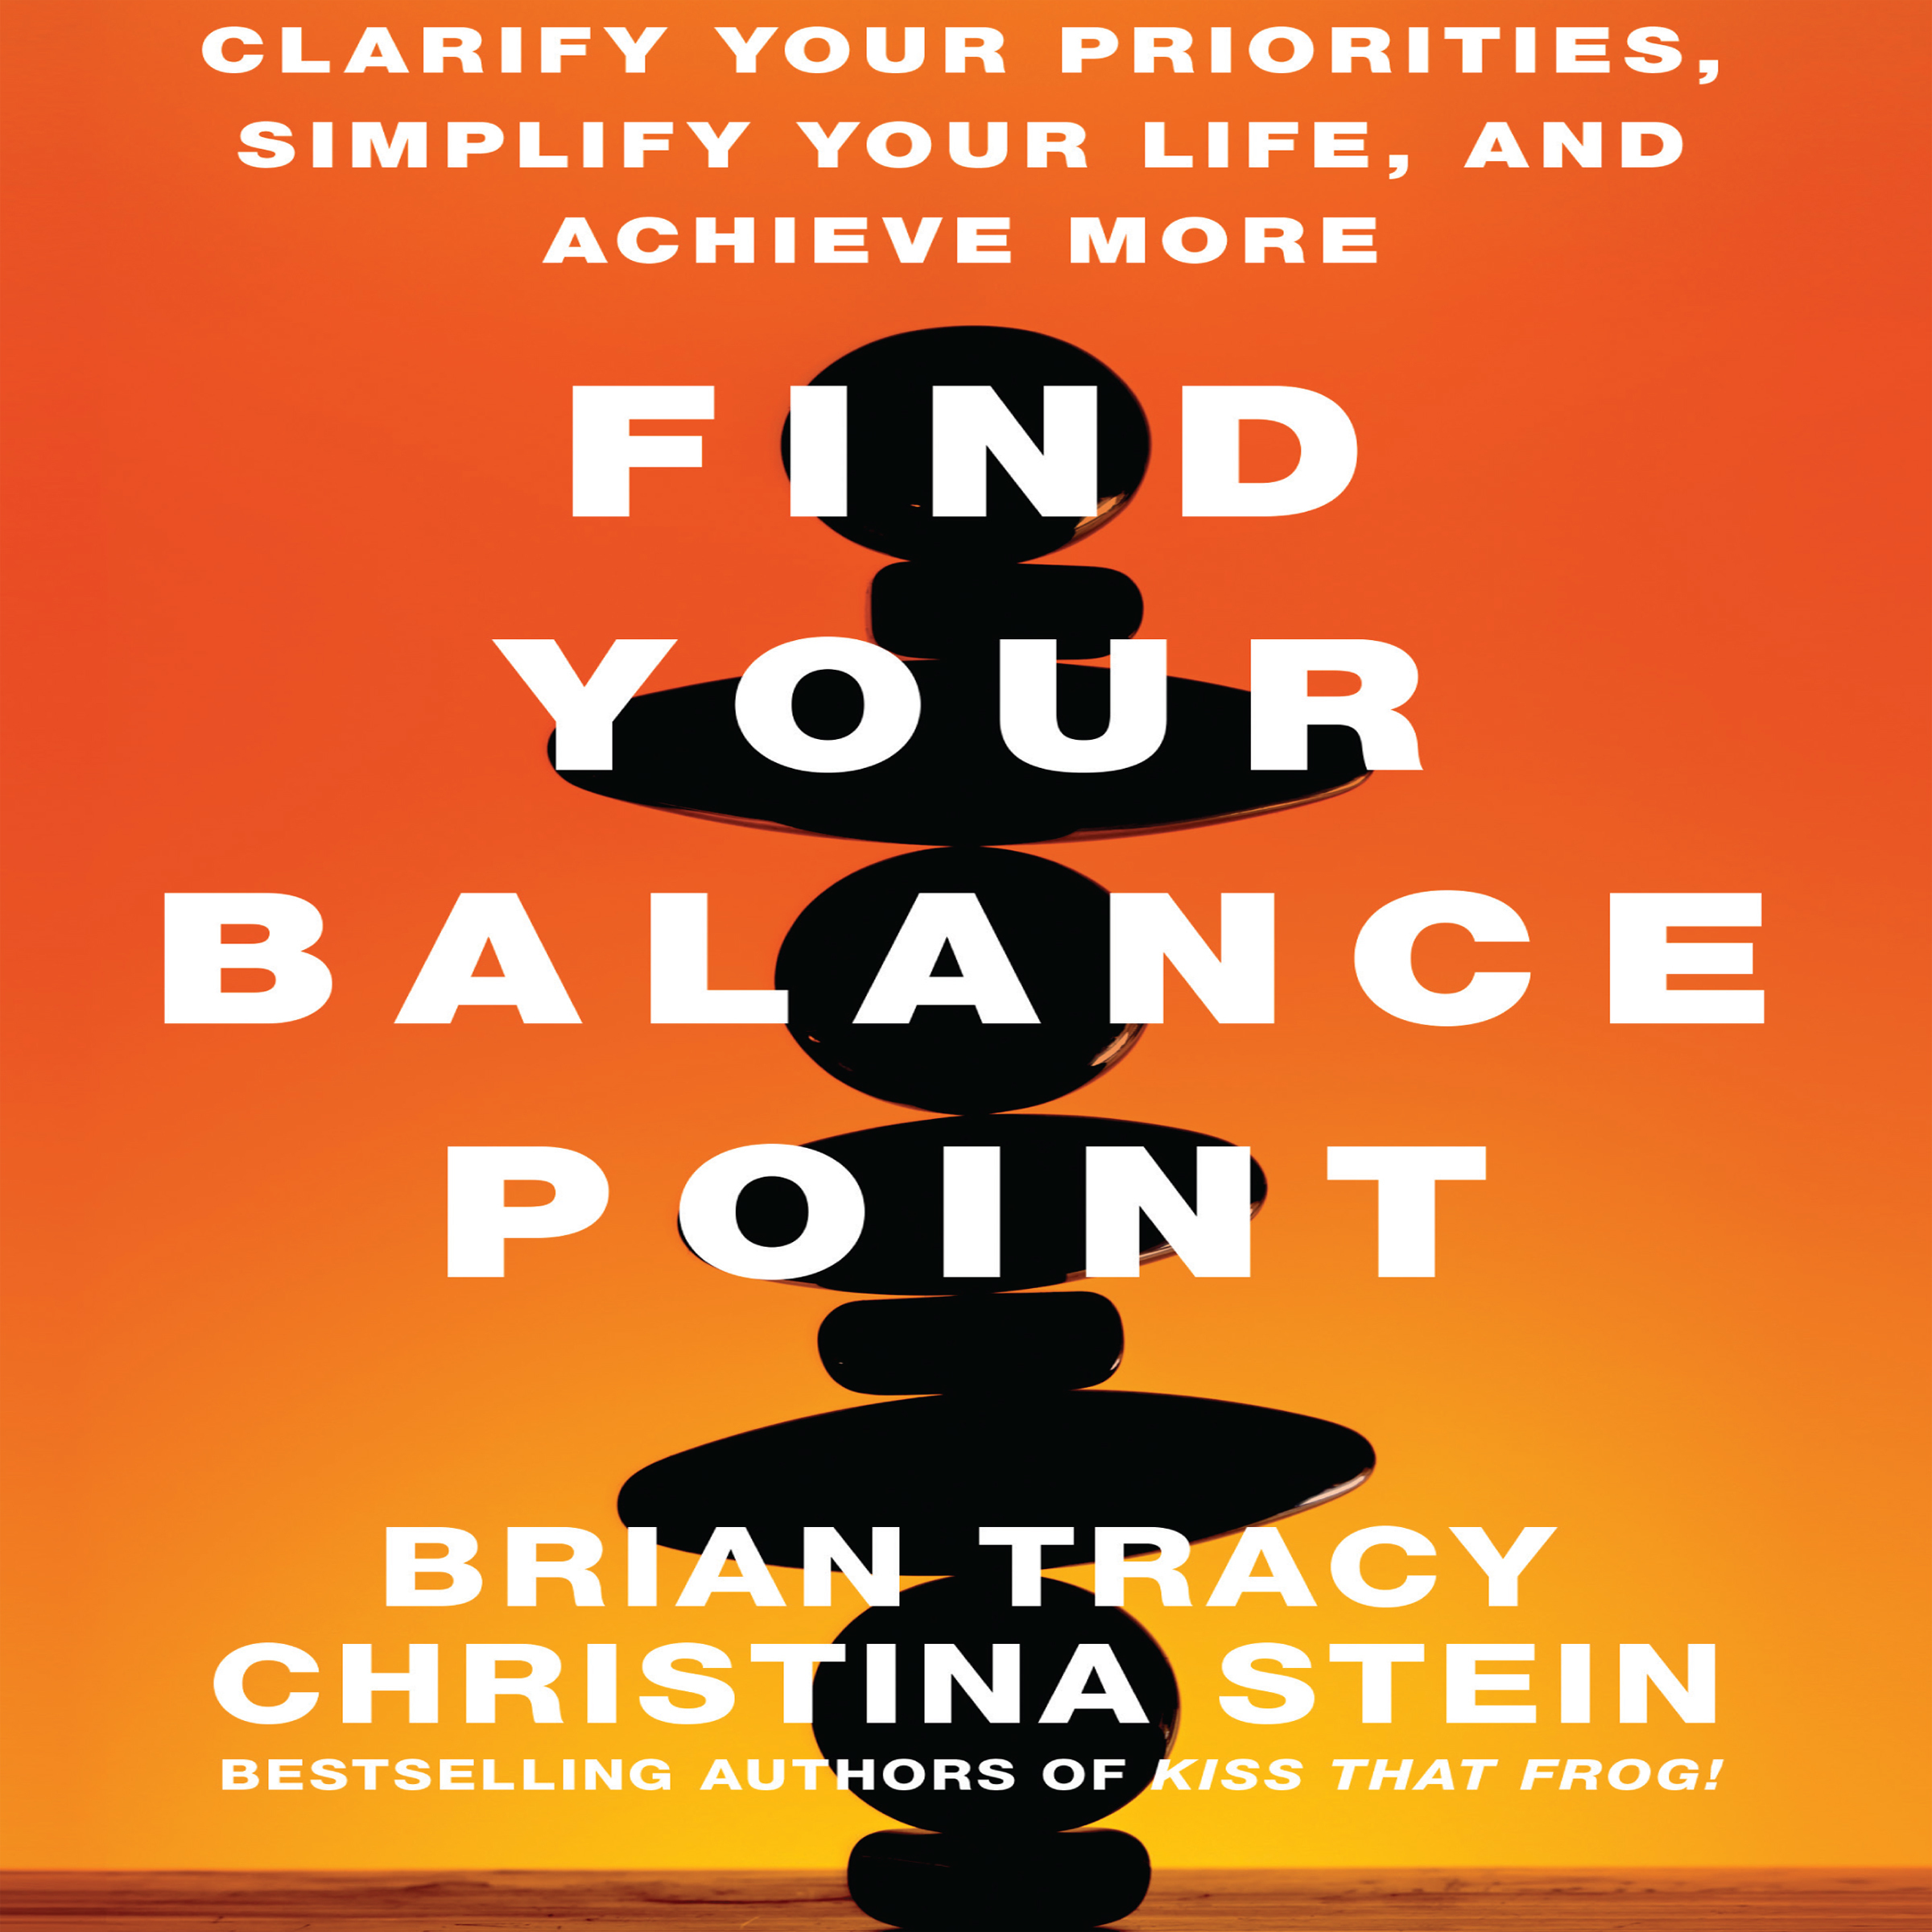 Printable Find Your Balance Point: Clarify Your Priorities, Simplify Your Life, and Achieve More Audiobook Cover Art